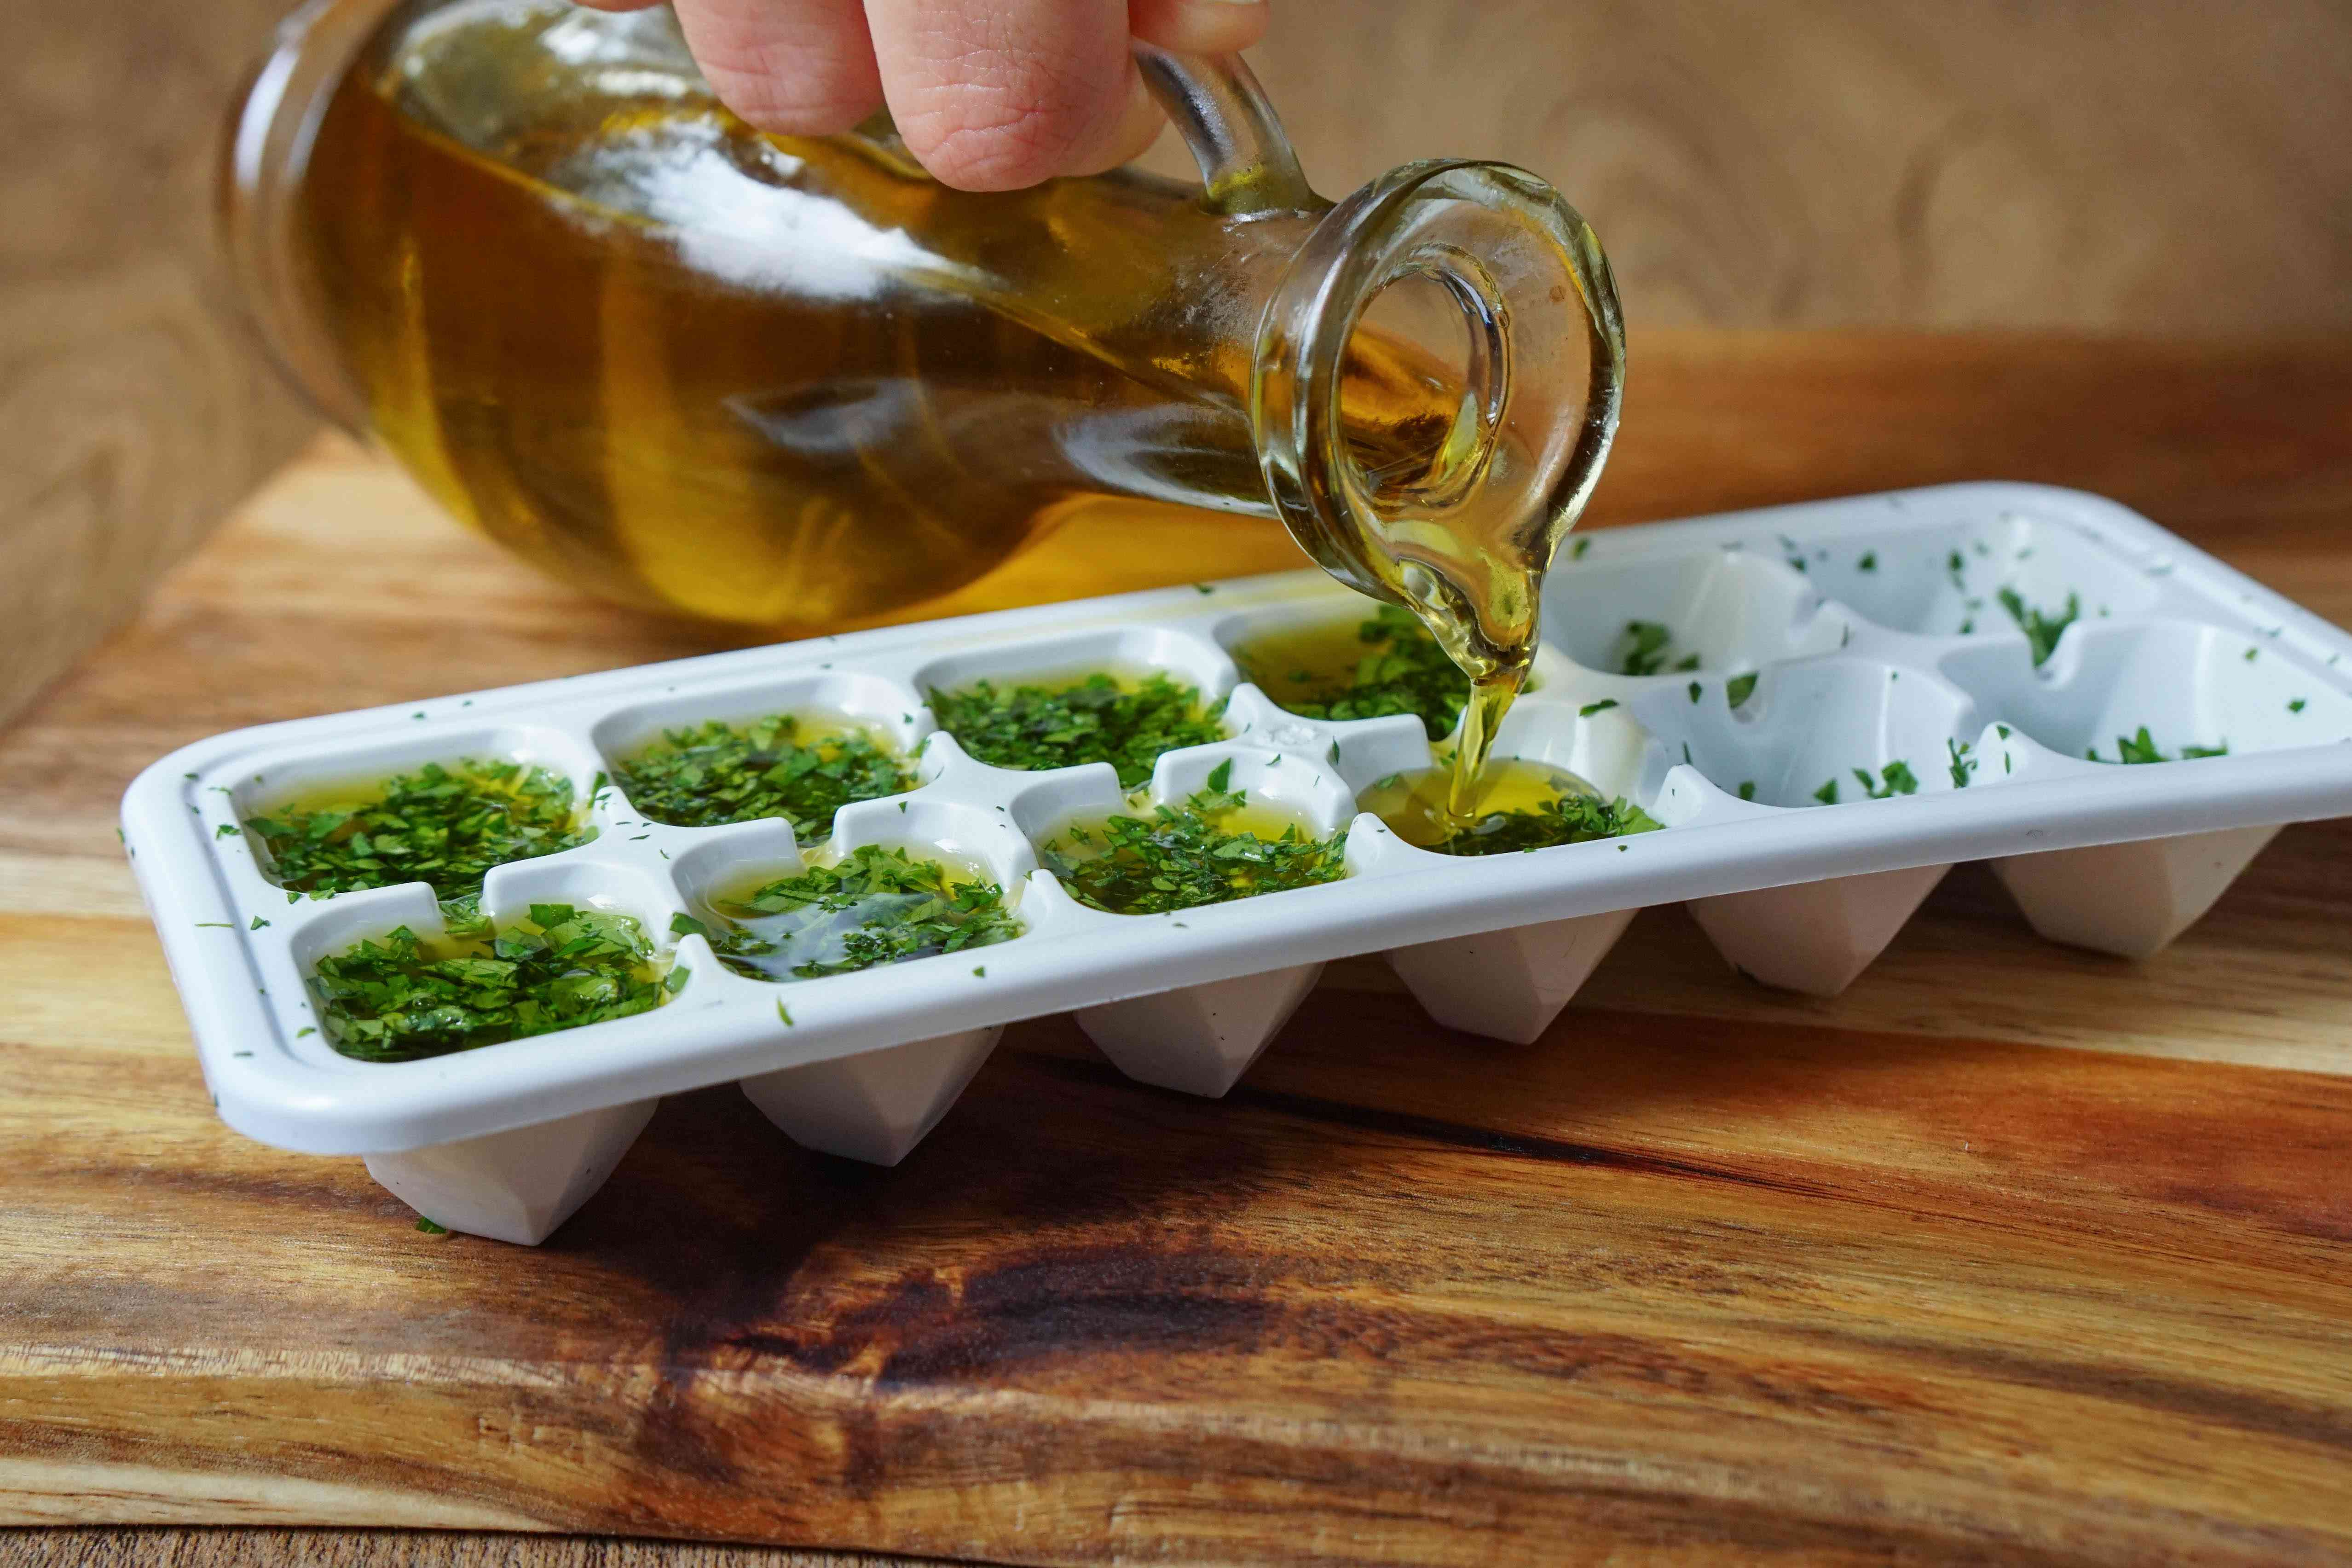 olive oil is poured from glass decanter into ice cube tray filled with chopped parsley to preserve